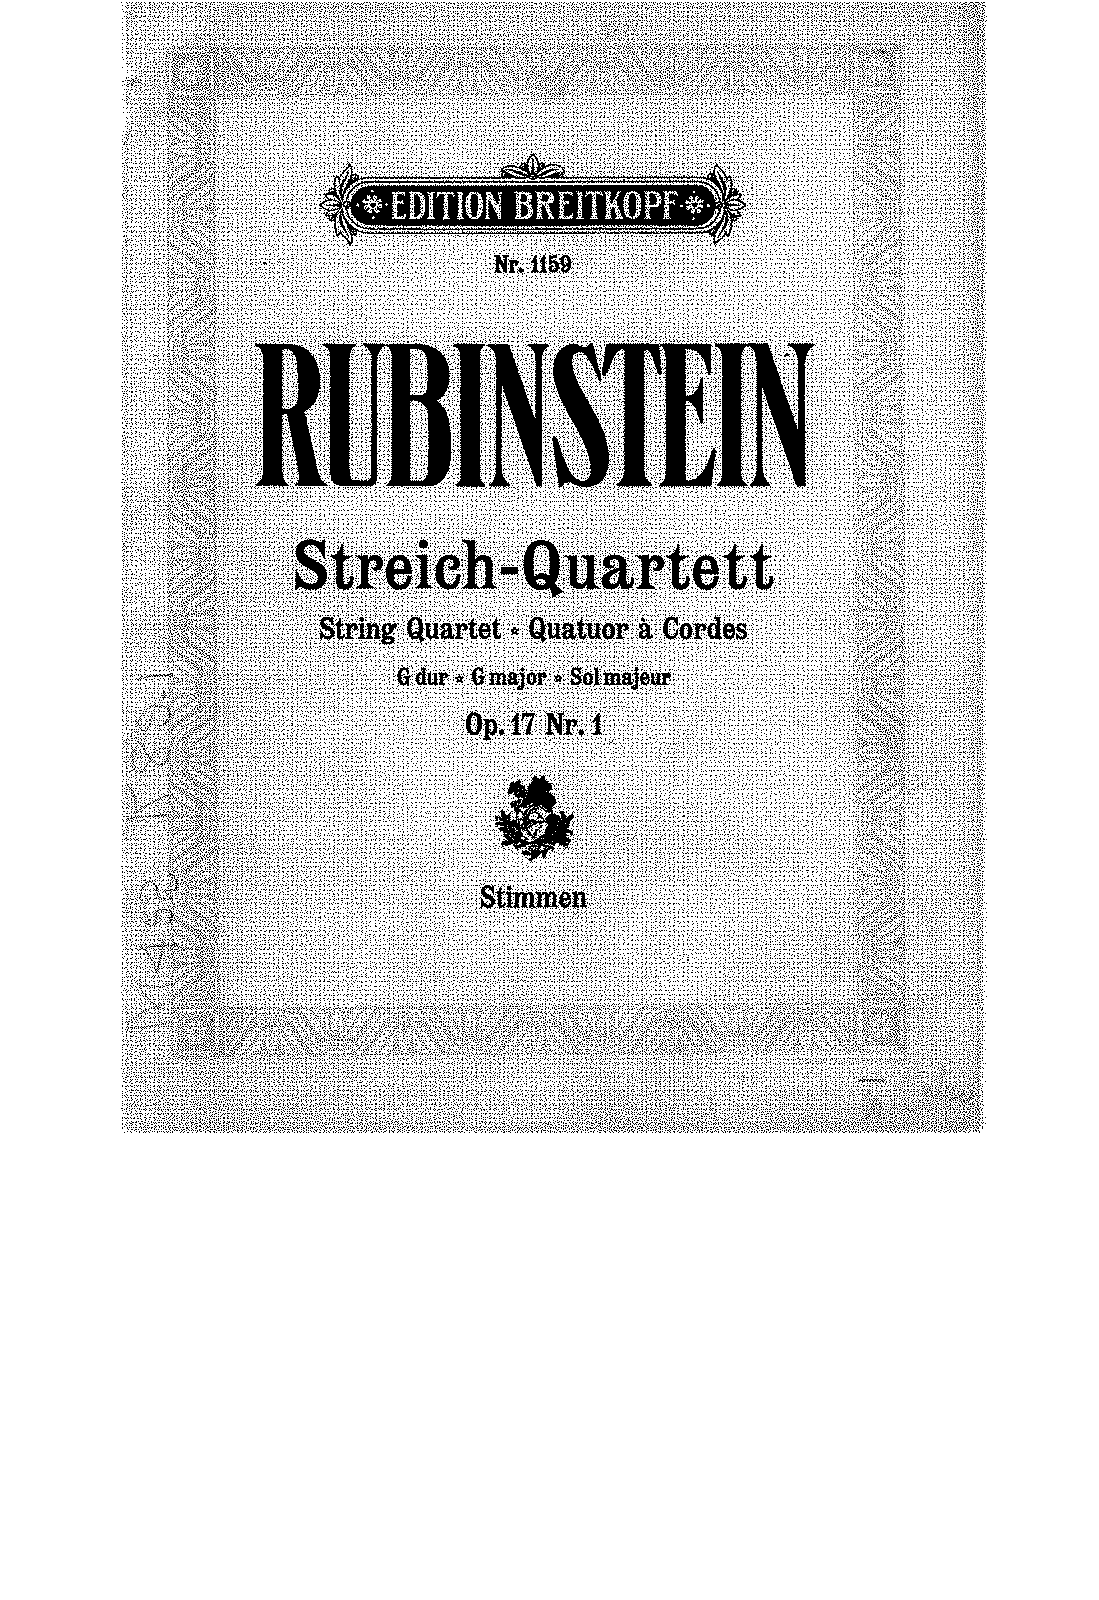 SIBLEY1802.7620.5404-39087009057615color cover.pdf